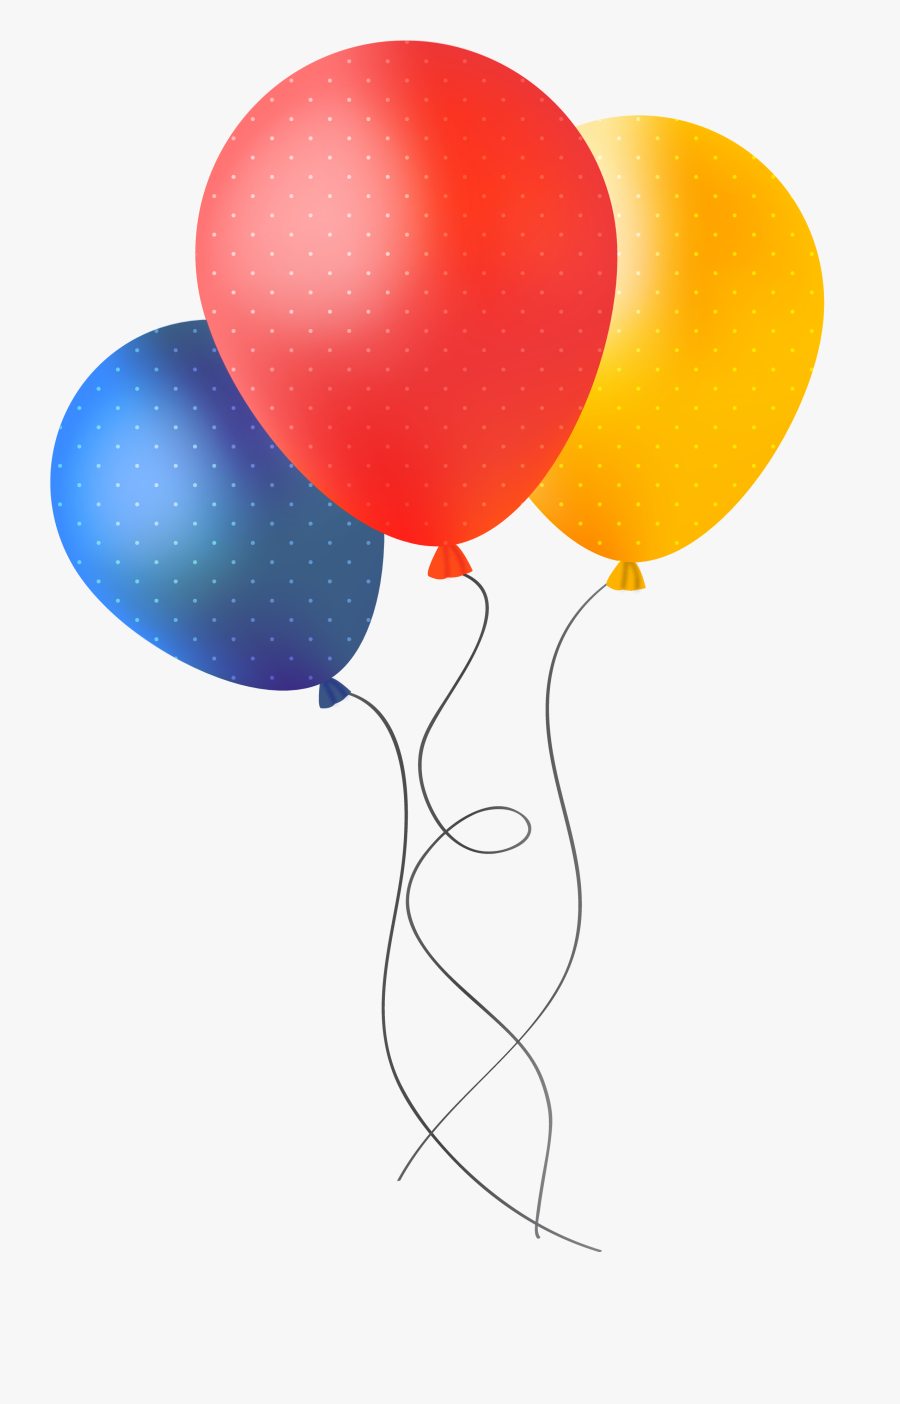 Party Balloon Png - Party Balloons Image Png, Transparent Clipart